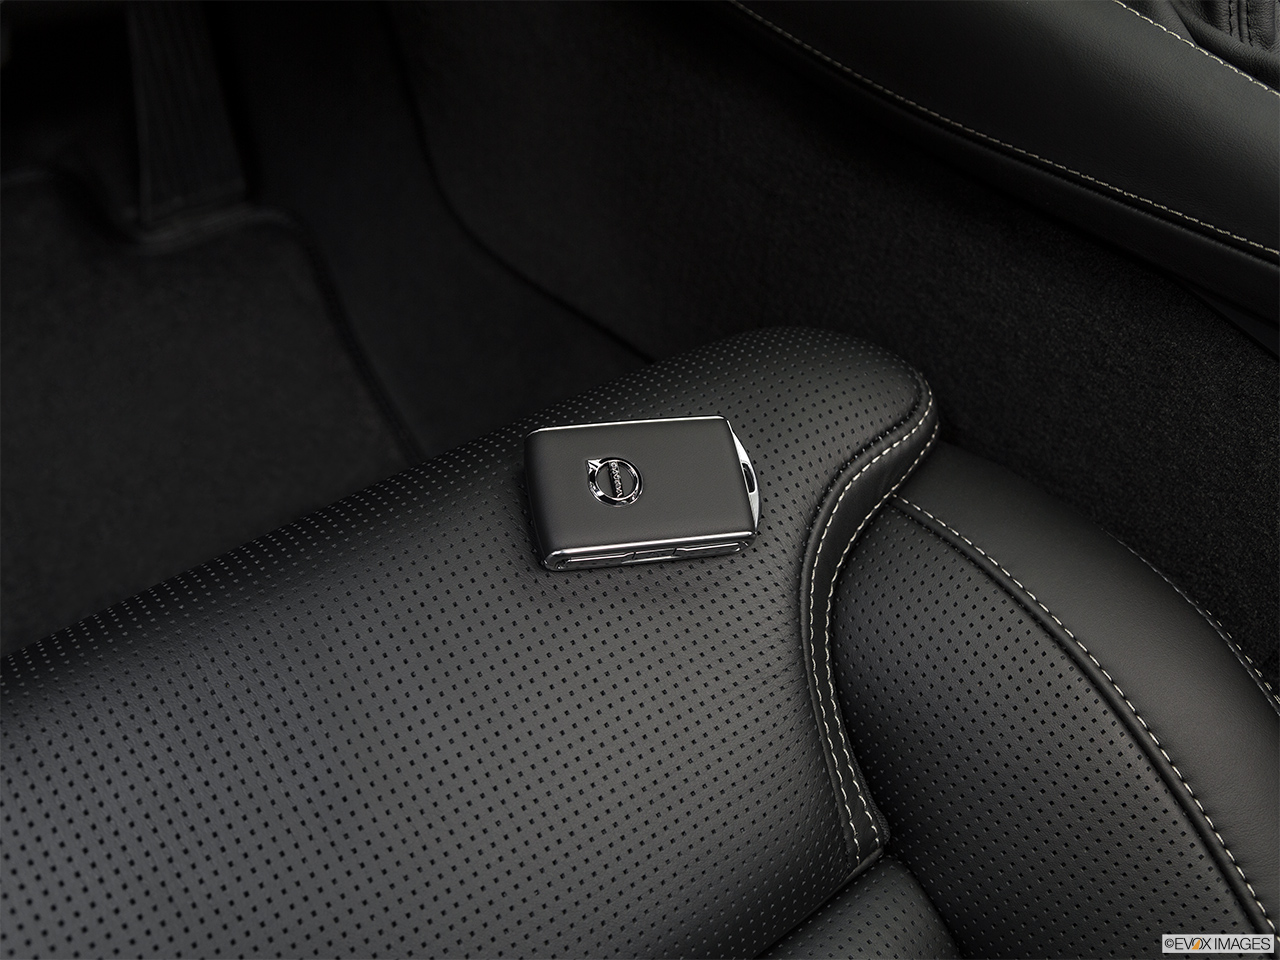 2019 Volvo XC90  T6 Inscription Key fob on driver's seat.